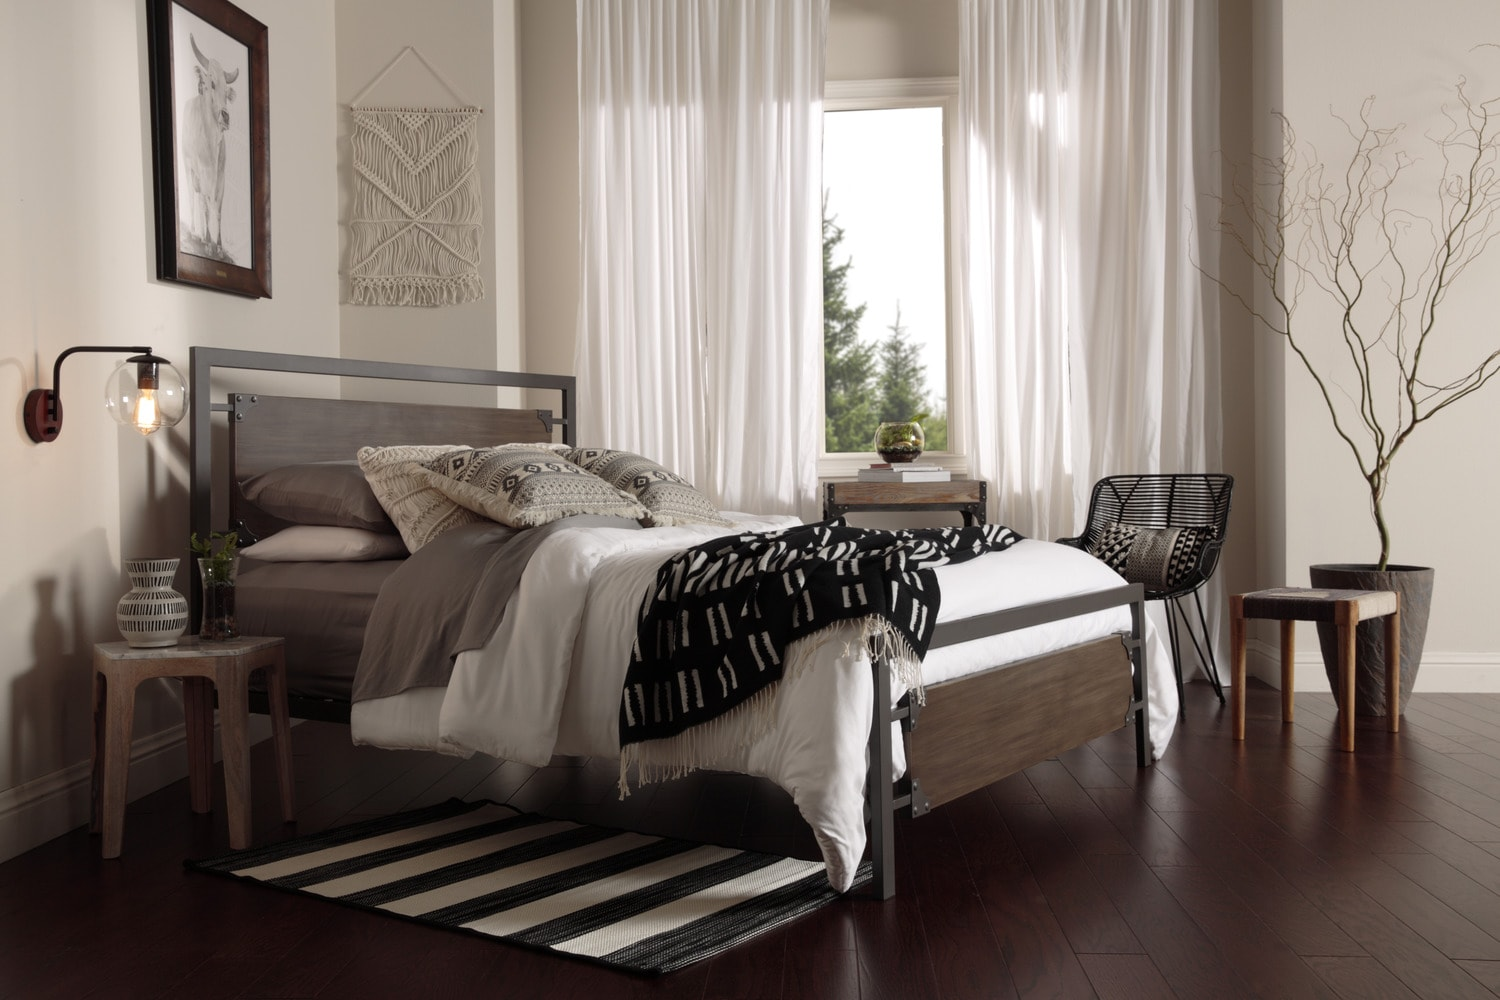 Bedroom Furniture - Citybed Full Bed - Barn Grey